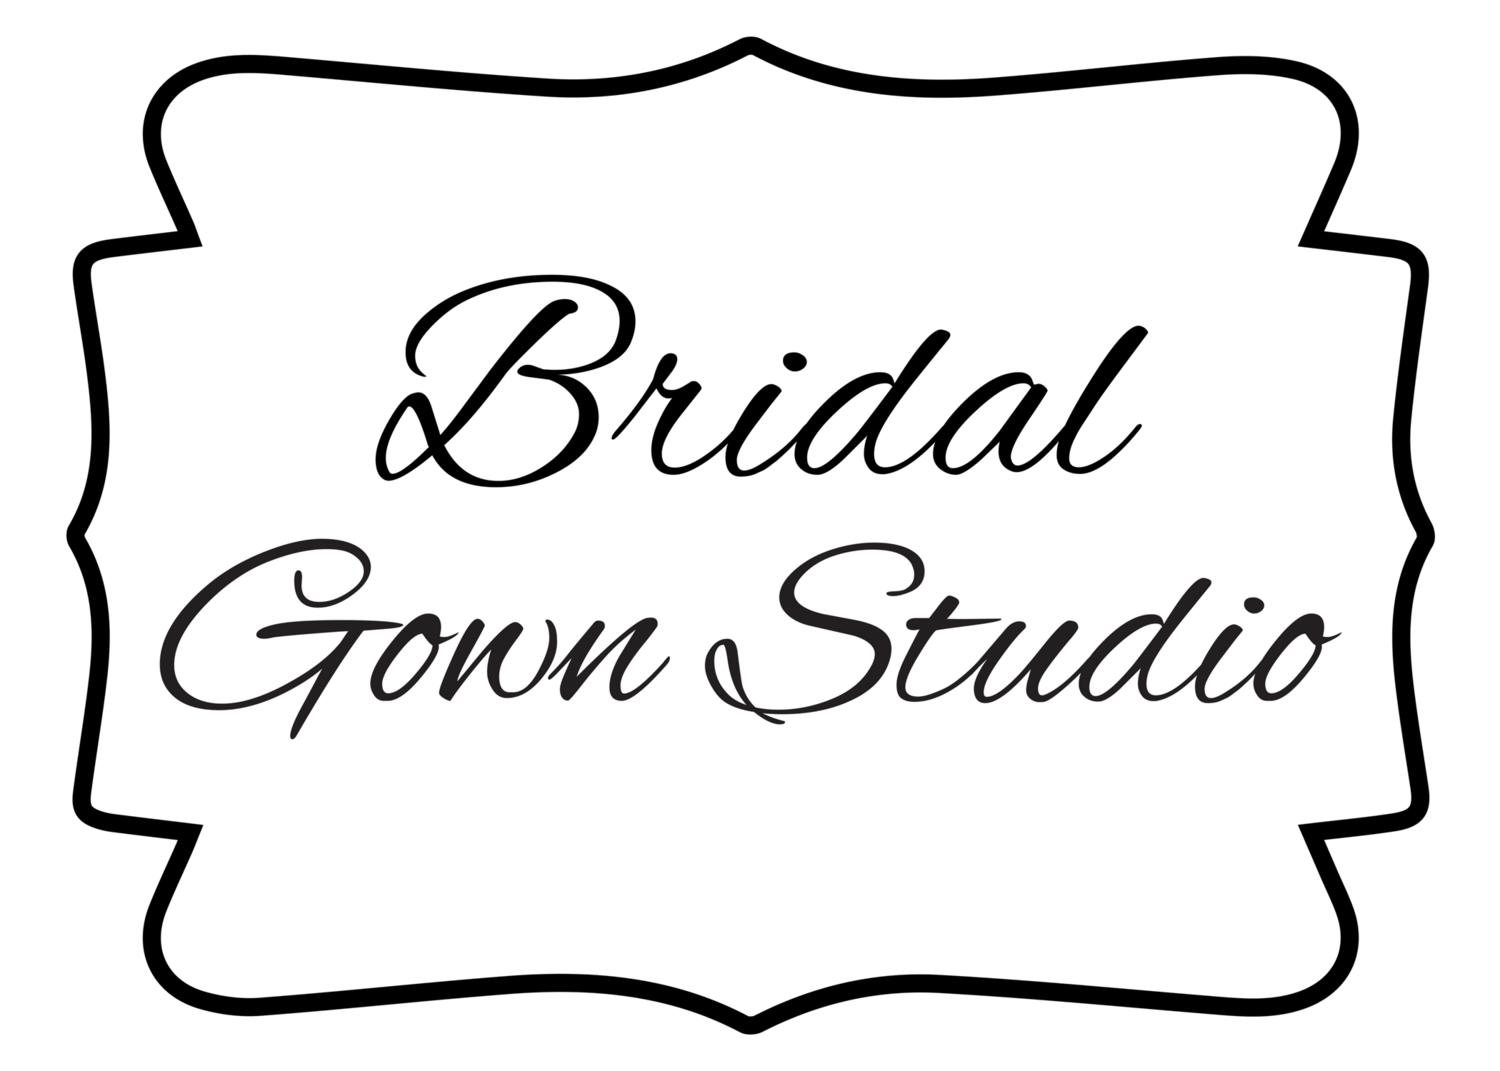 BRIDAL GOWN STUDIO